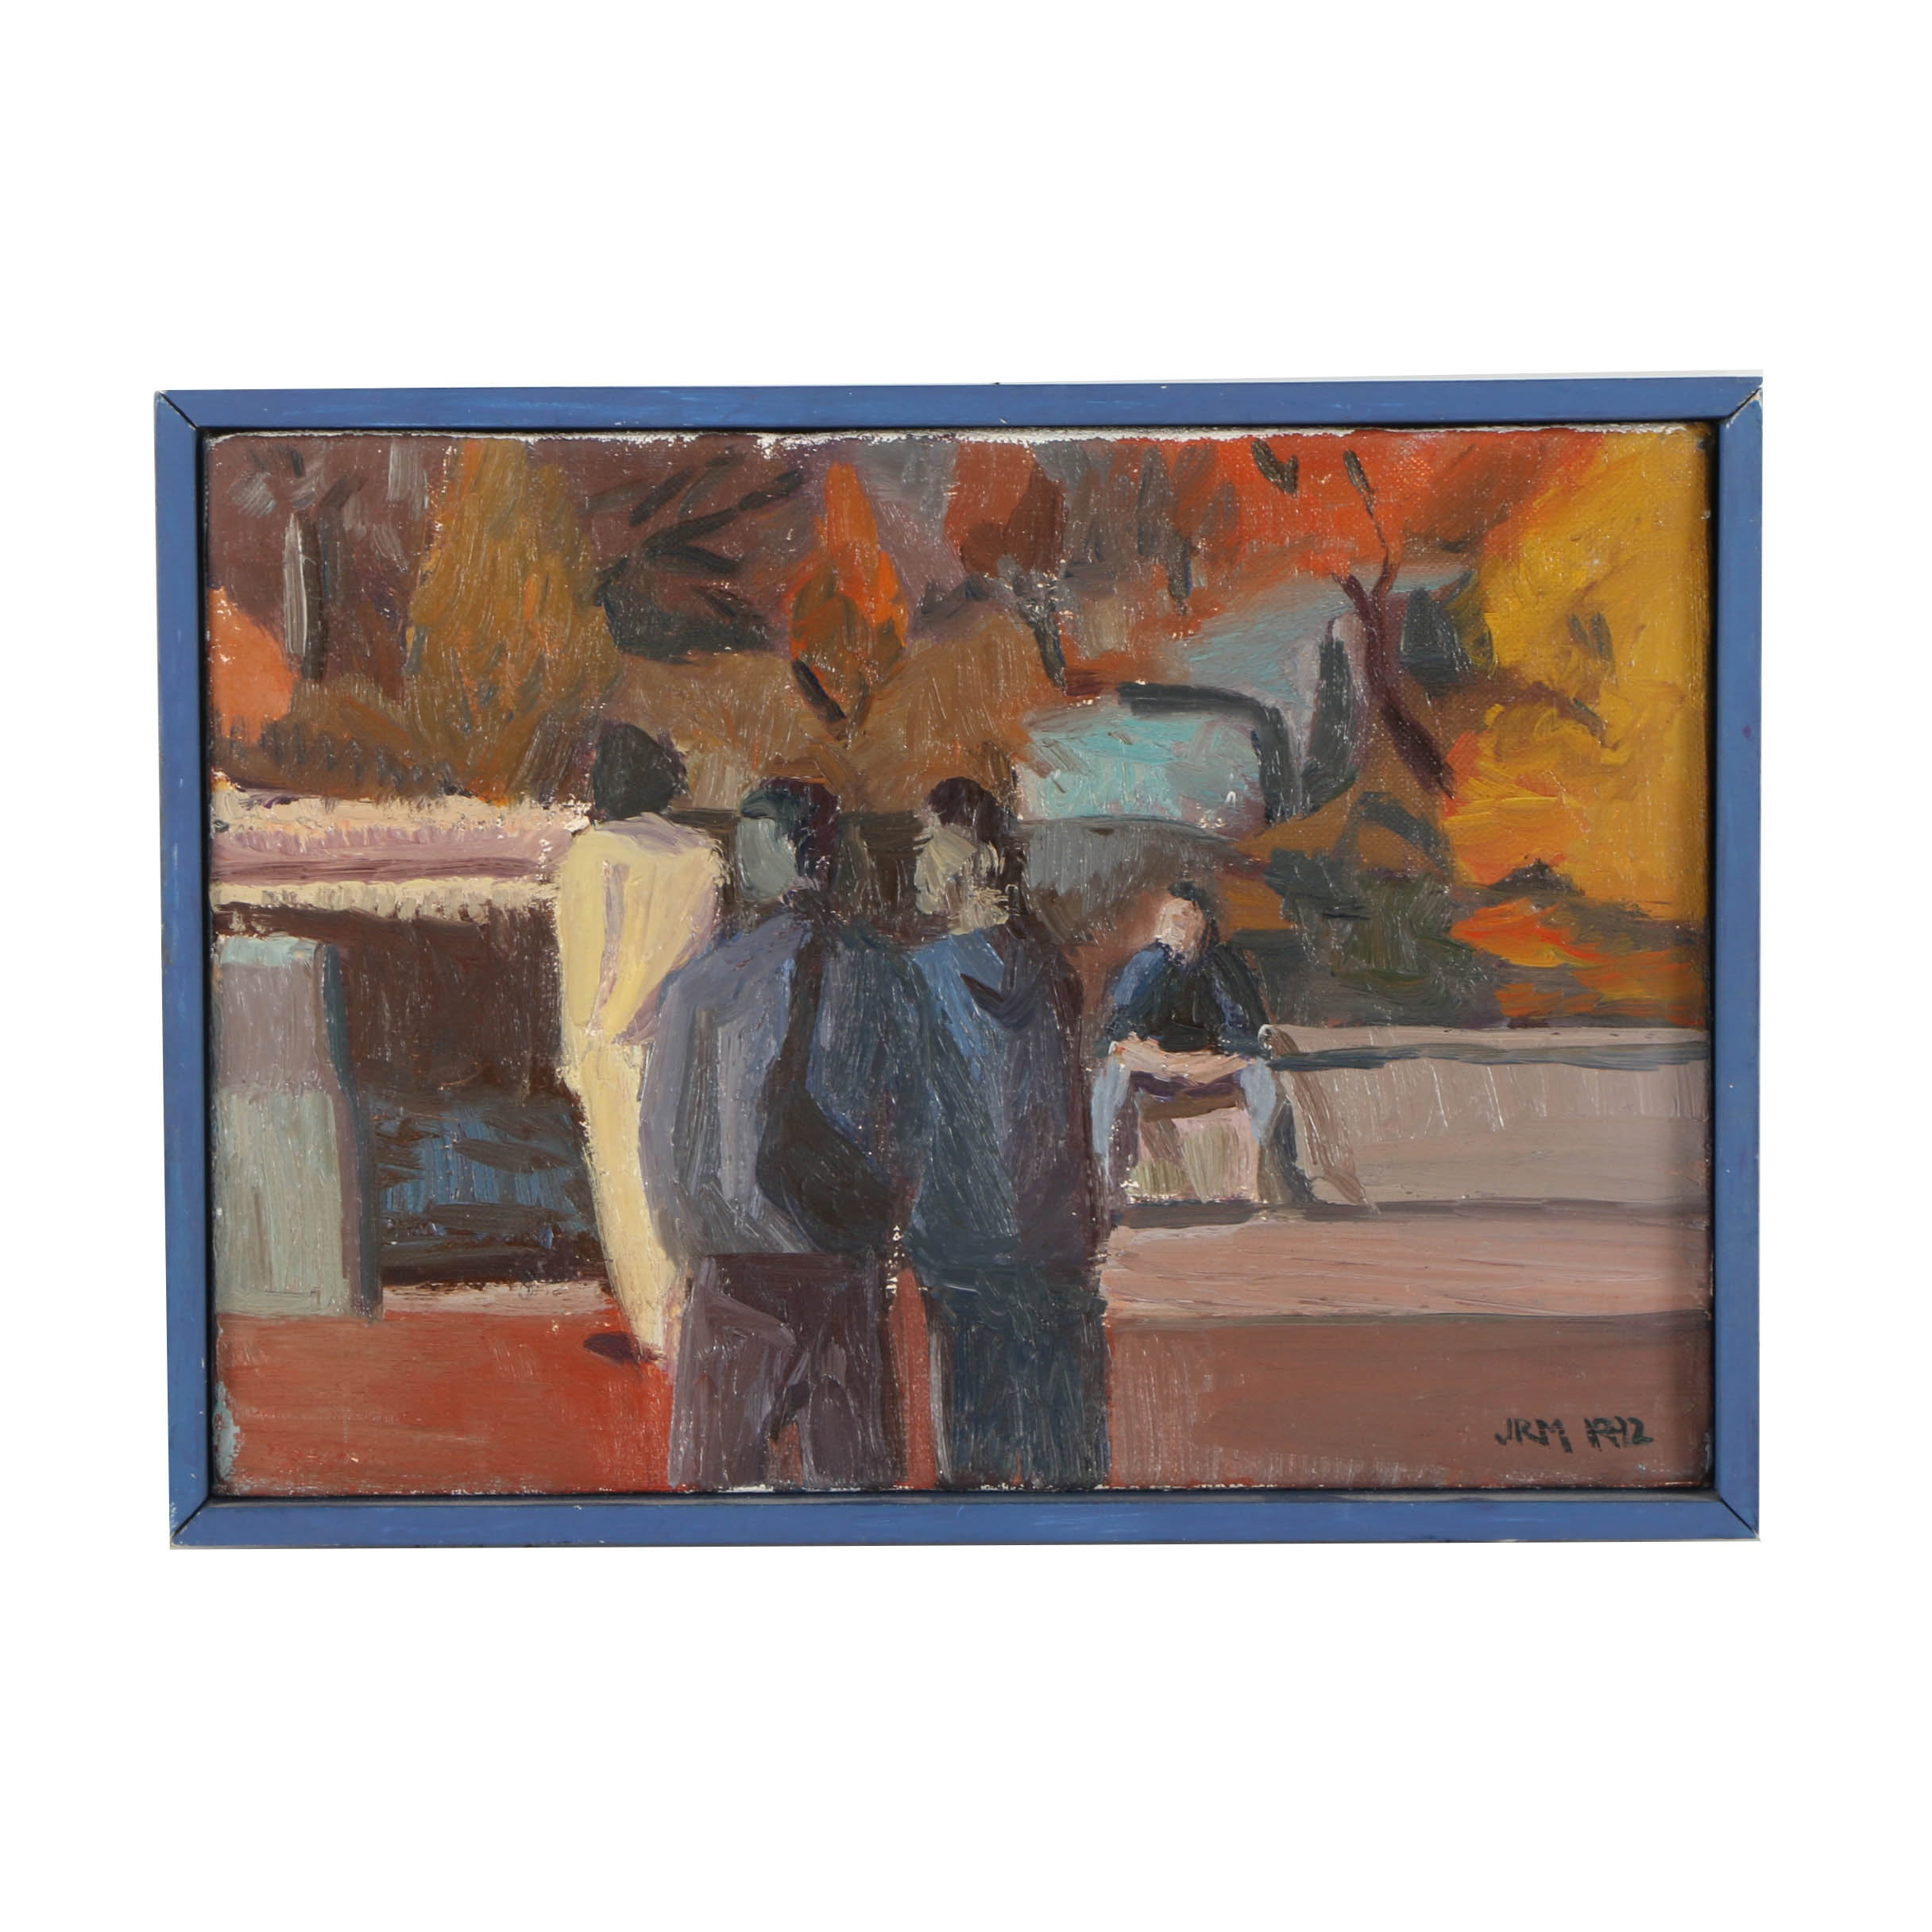 J.R.M. Abstract Oil Painting of Figures in an Autumnal Landscape